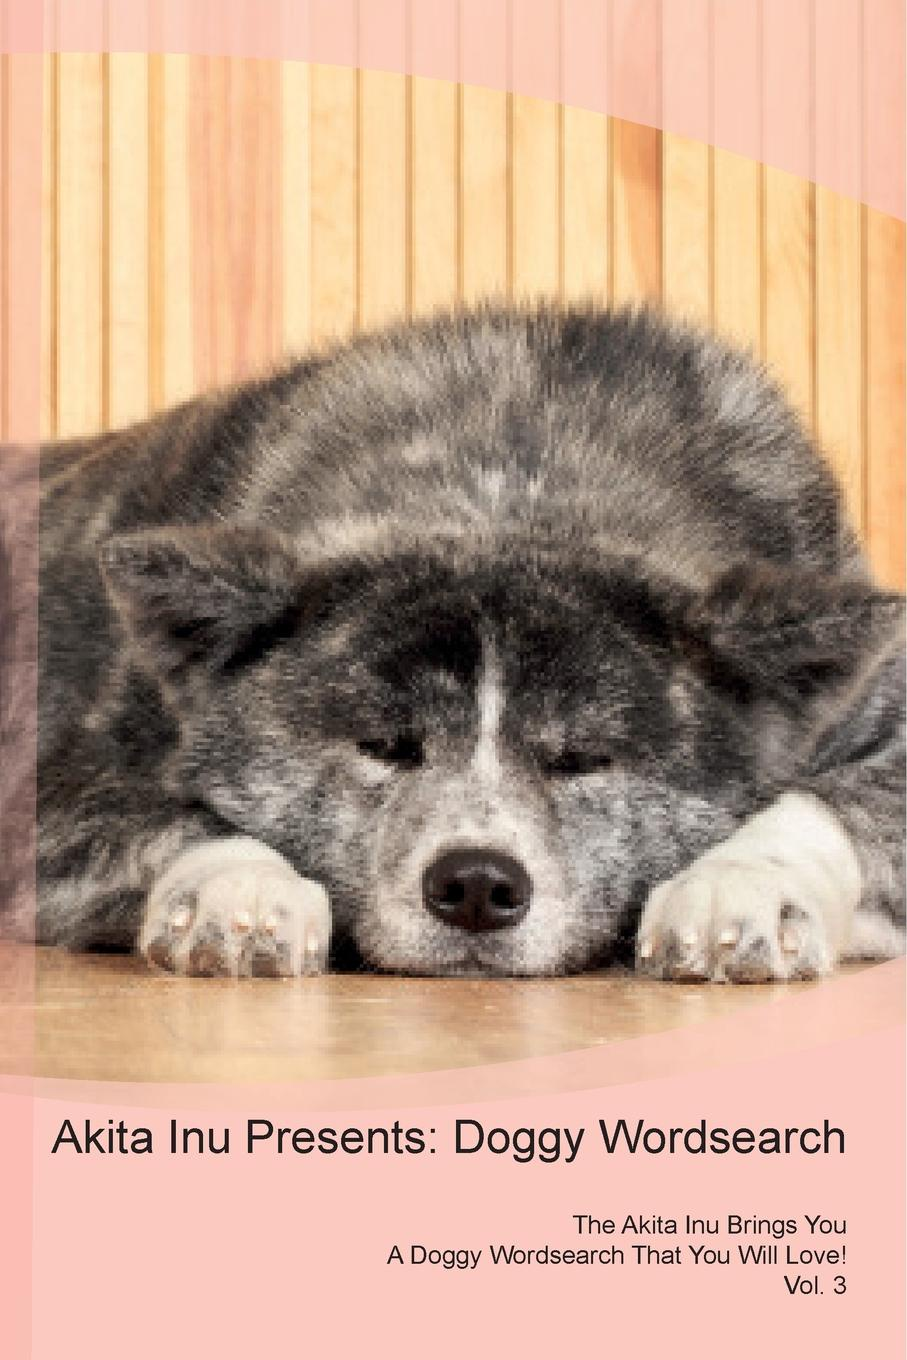 Doggy Puzzles Akita Inu Presents. Wordsearch The Brings You A That Will Love! Vol. 3